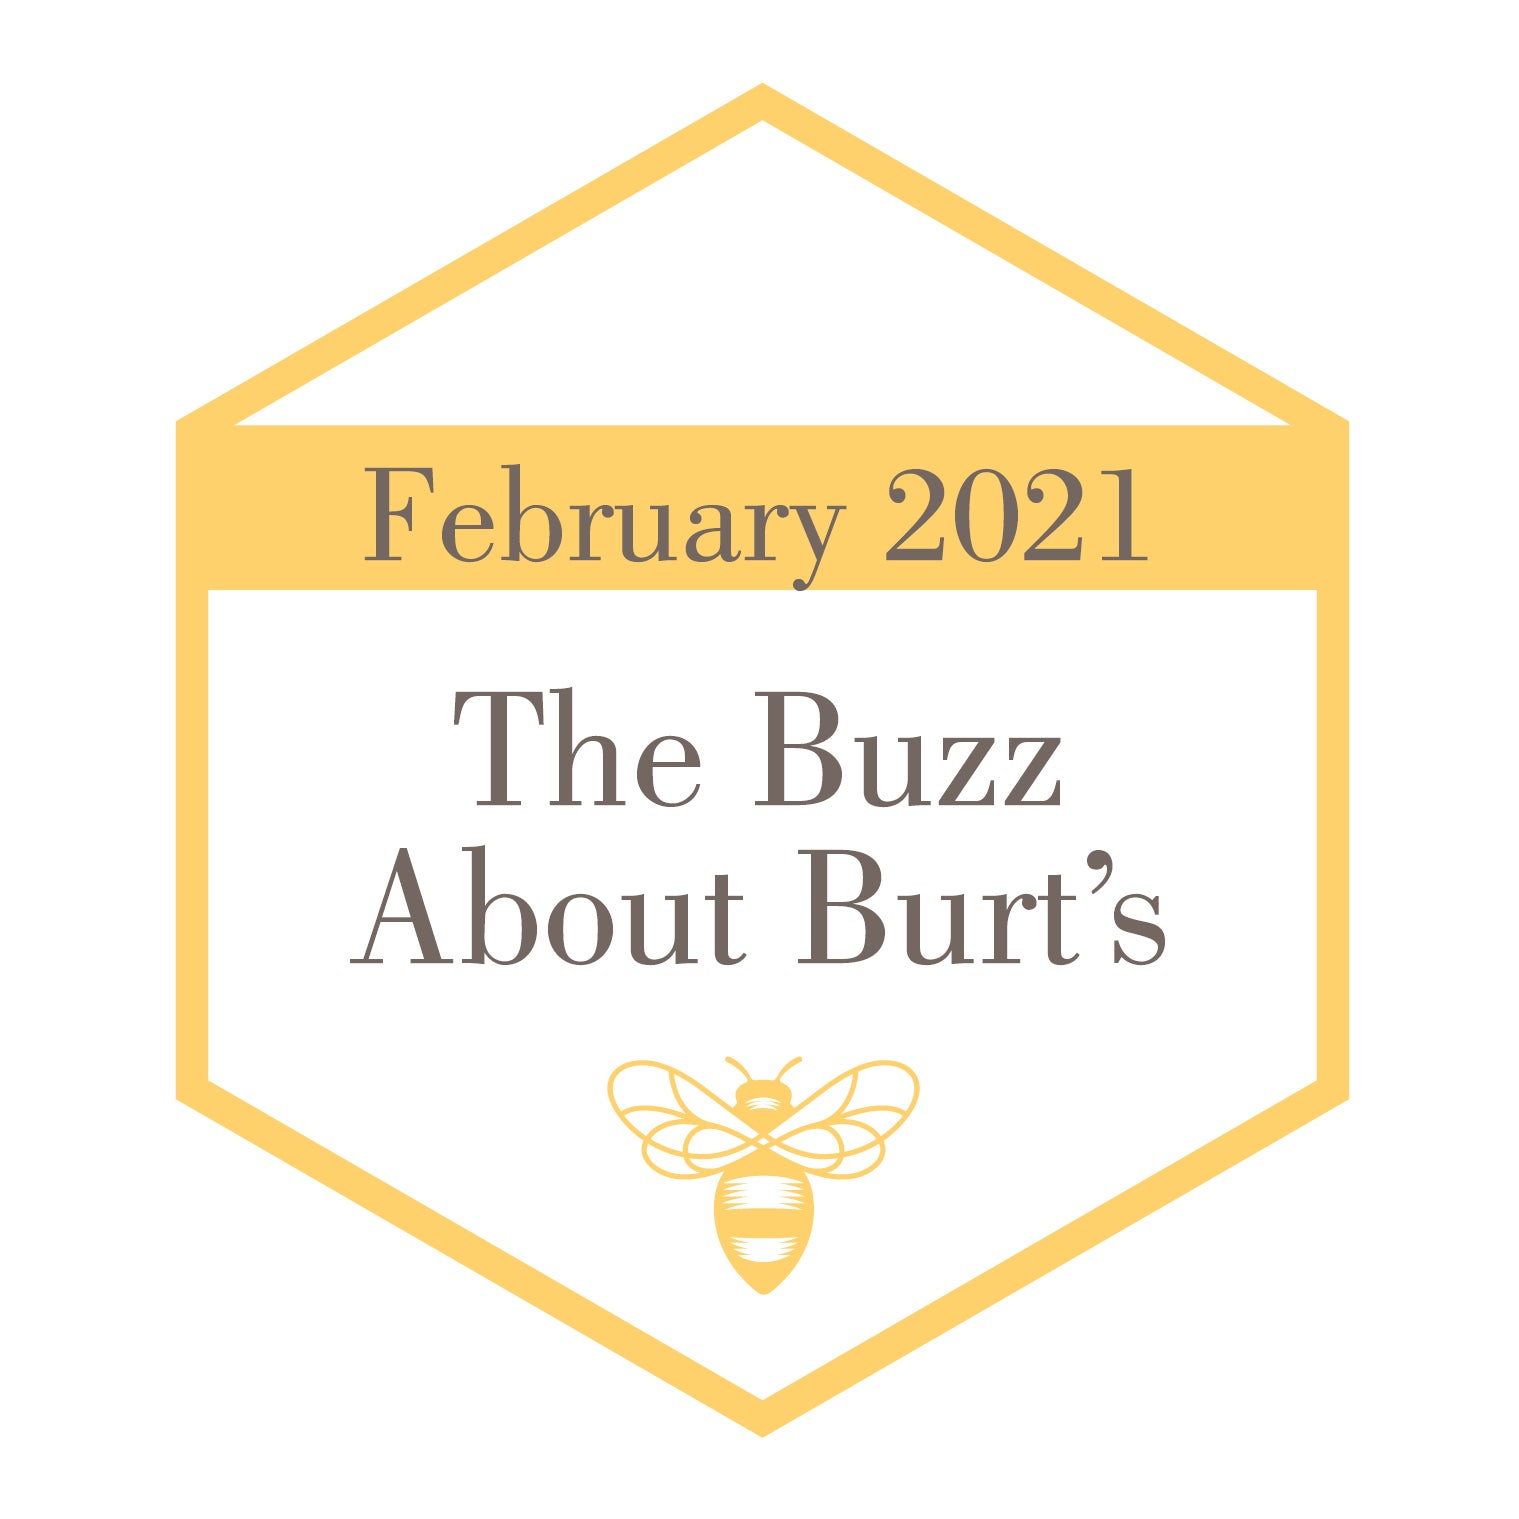 The Buzz About Burt's - February